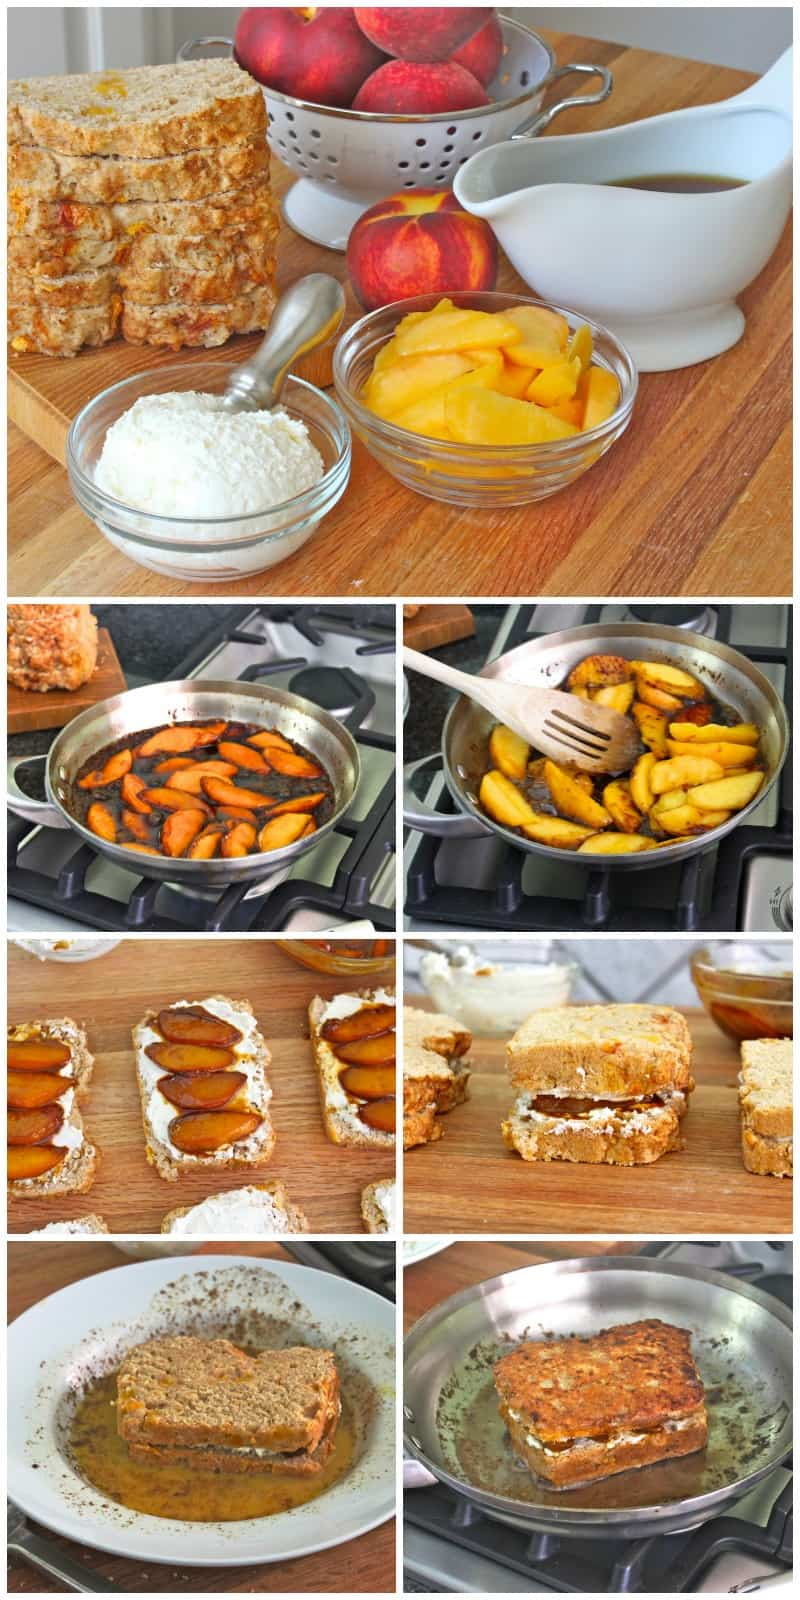 Serve warm with maple syrup, whipped cream and more peaches!